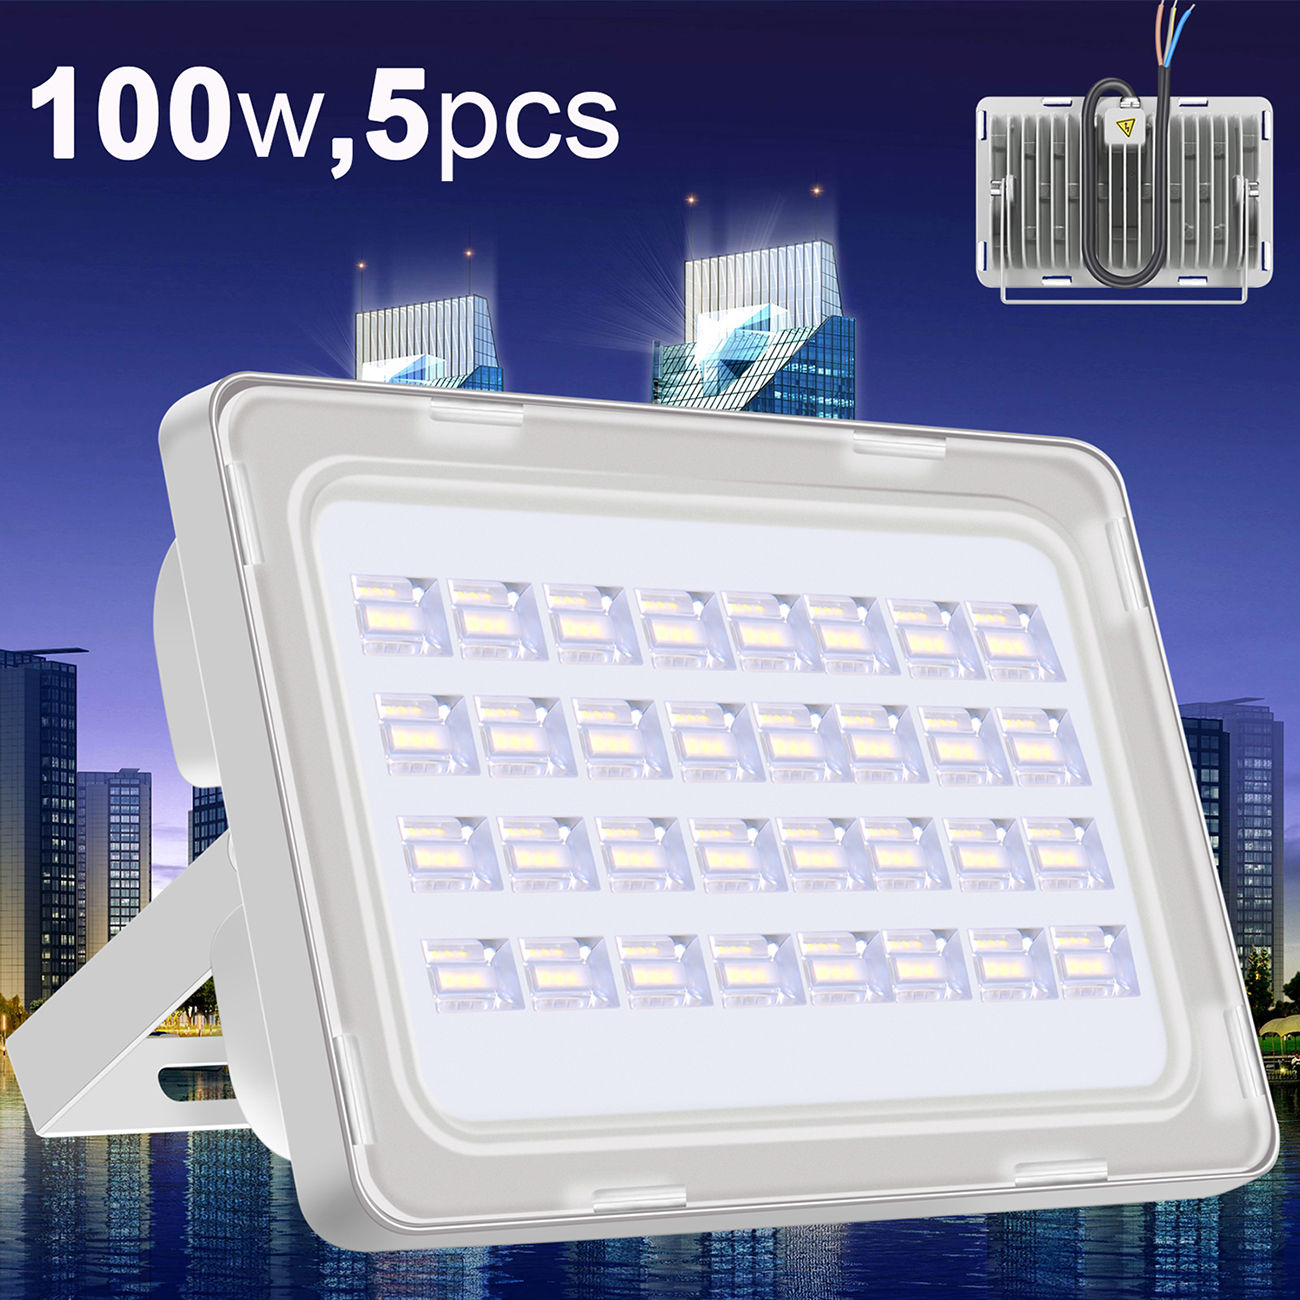 5X Viugreum 100W LED Floodlight Outdoor Landscape Lamp Cool White Waterproof